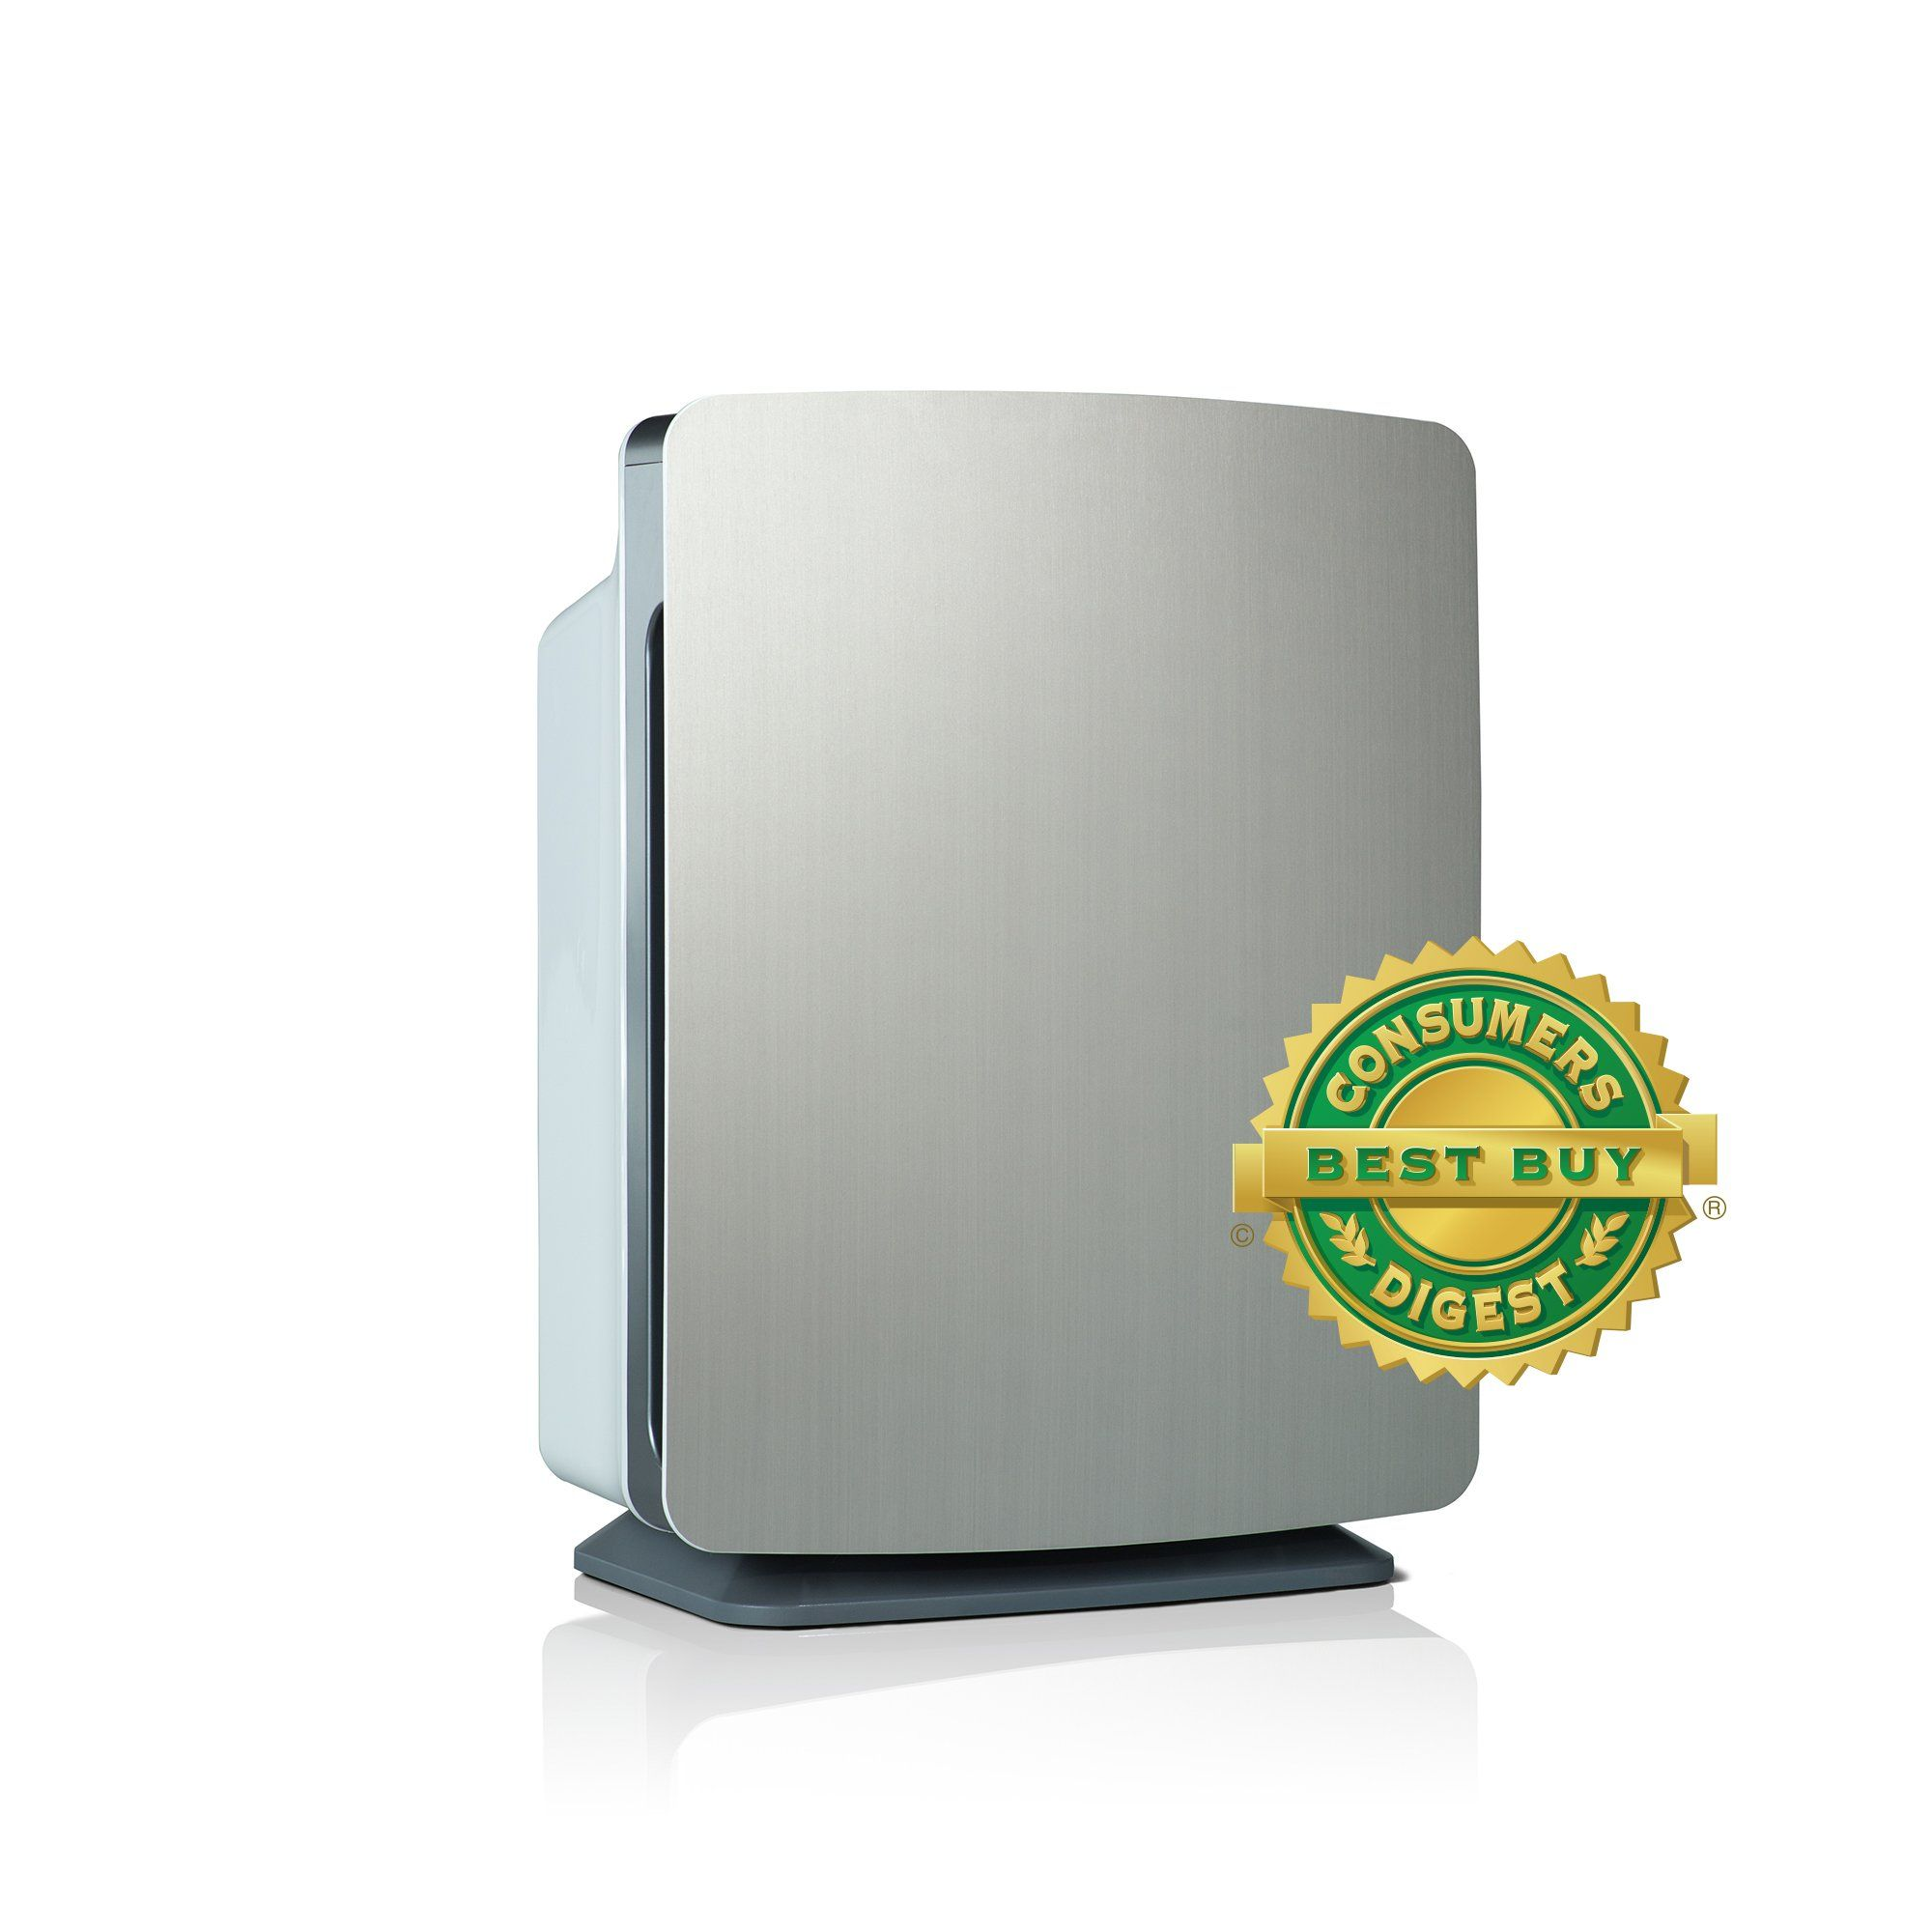 Alen FIT50 Customizable Air Purifier with HEPA Filter to